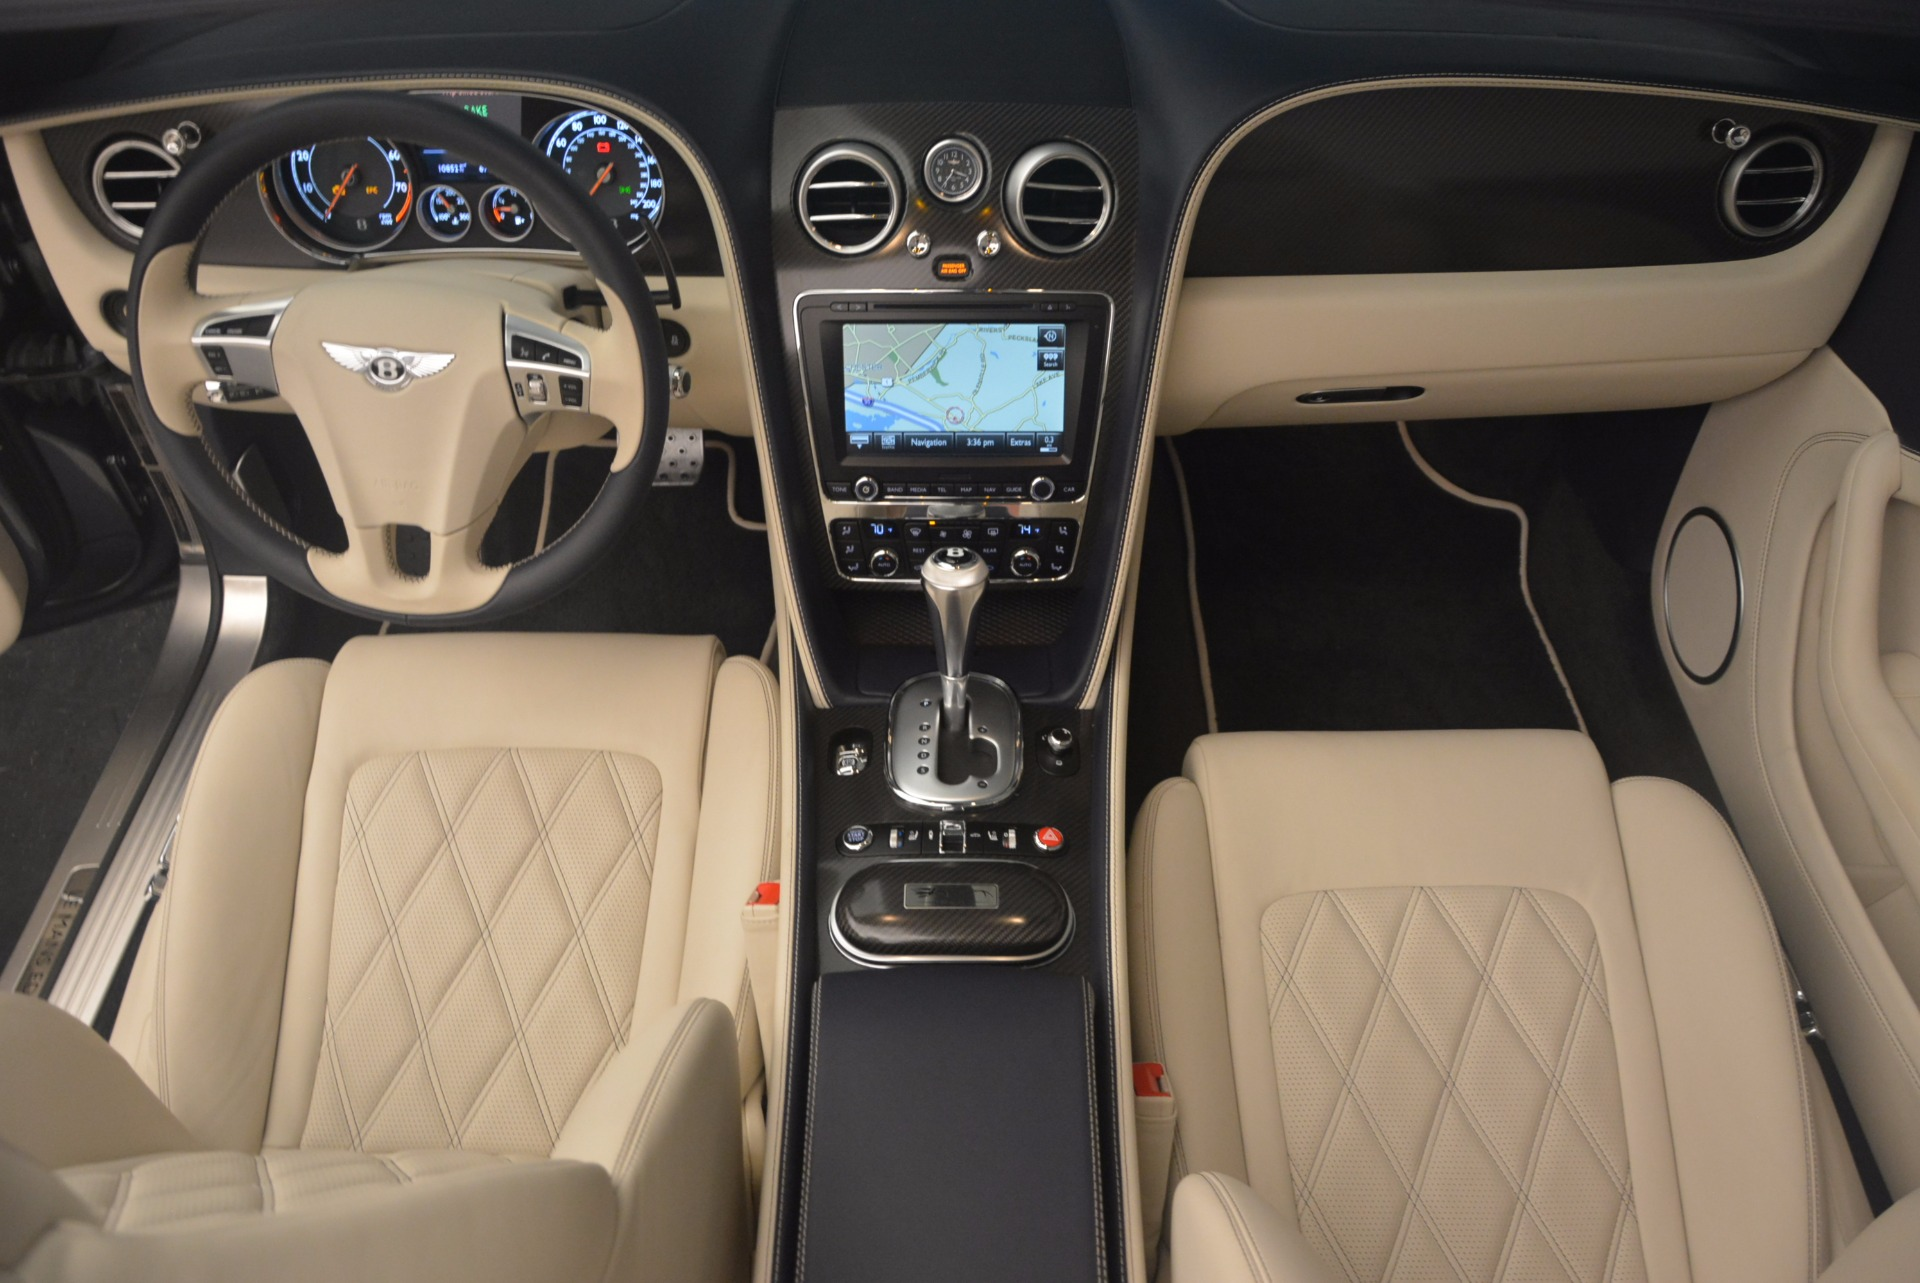 Used 2013 Bentley Continental GT V8 Le Mans Edition, 1 of 48 For Sale In Greenwich, CT. Alfa Romeo of Greenwich, 7226 1288_p37